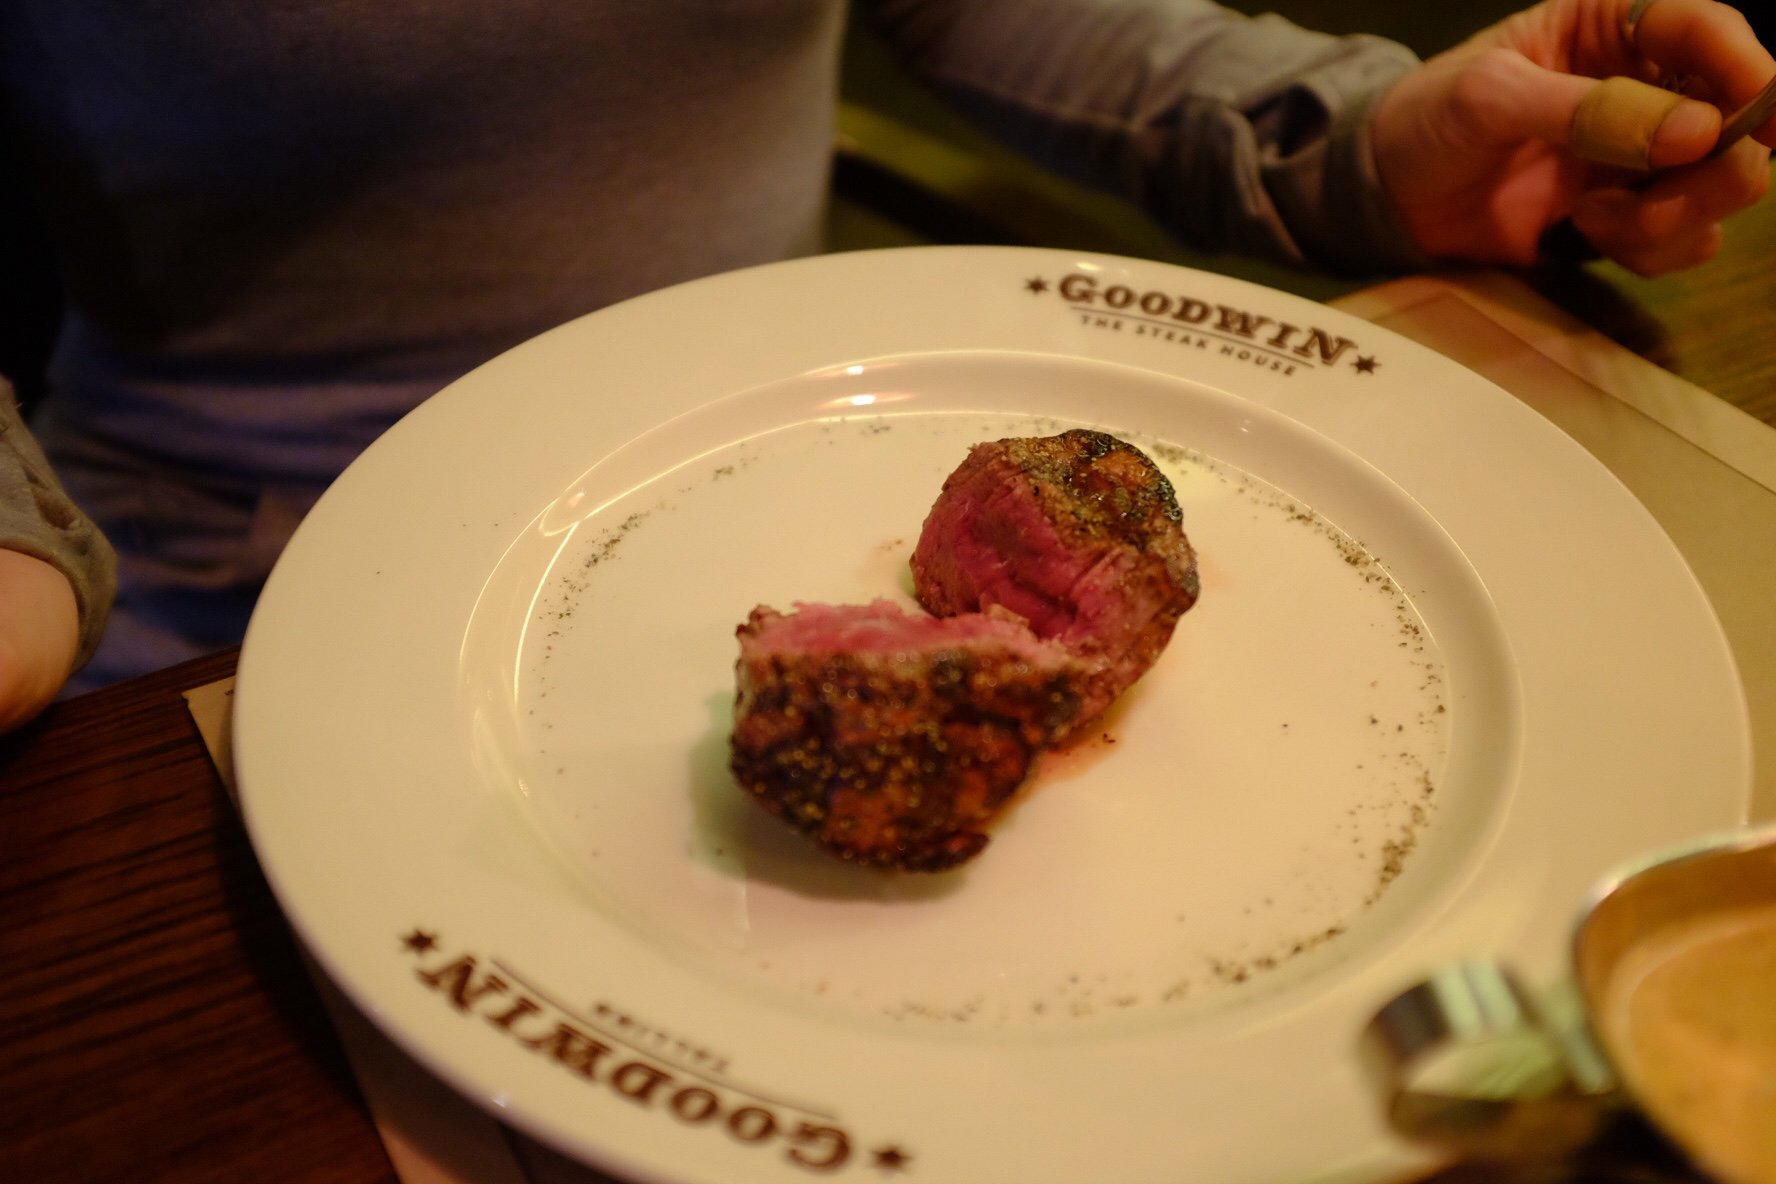 Beefsteak at the Goodwin in Tallinn